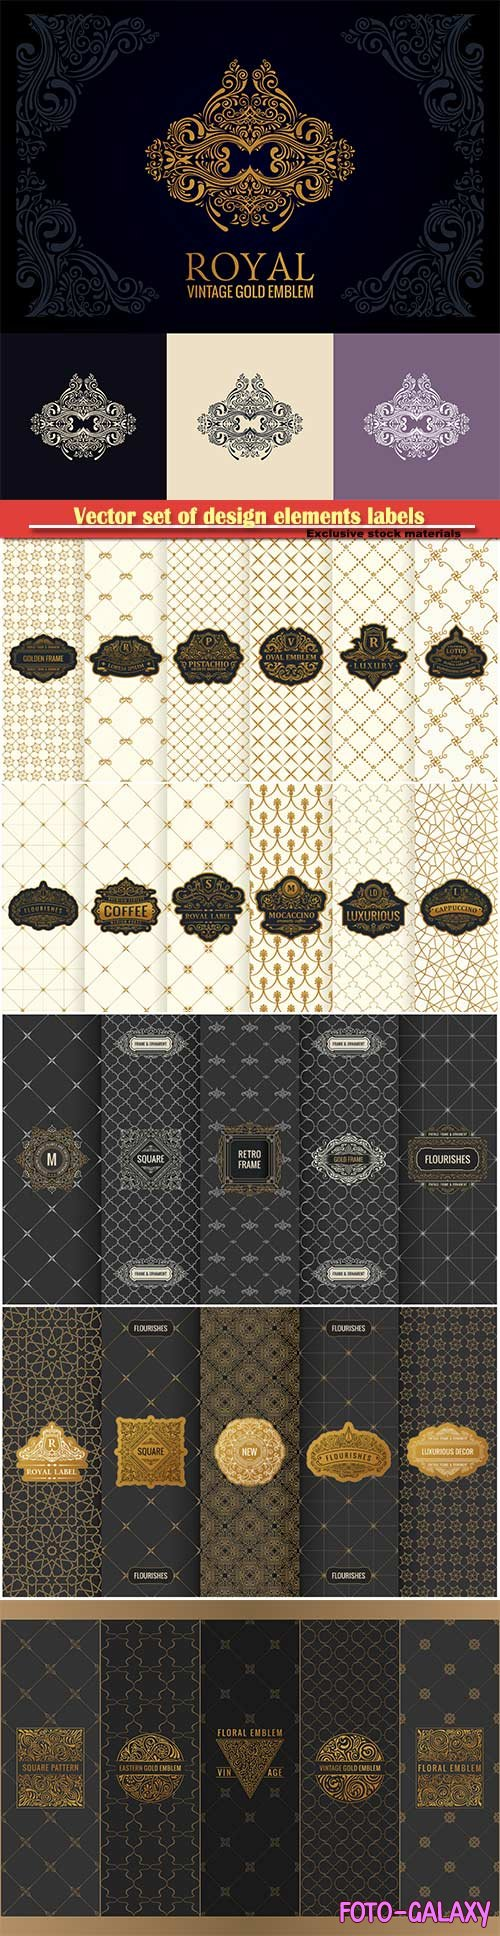 Vector set of design elements labels, icon, logo, frame, luxury packaging